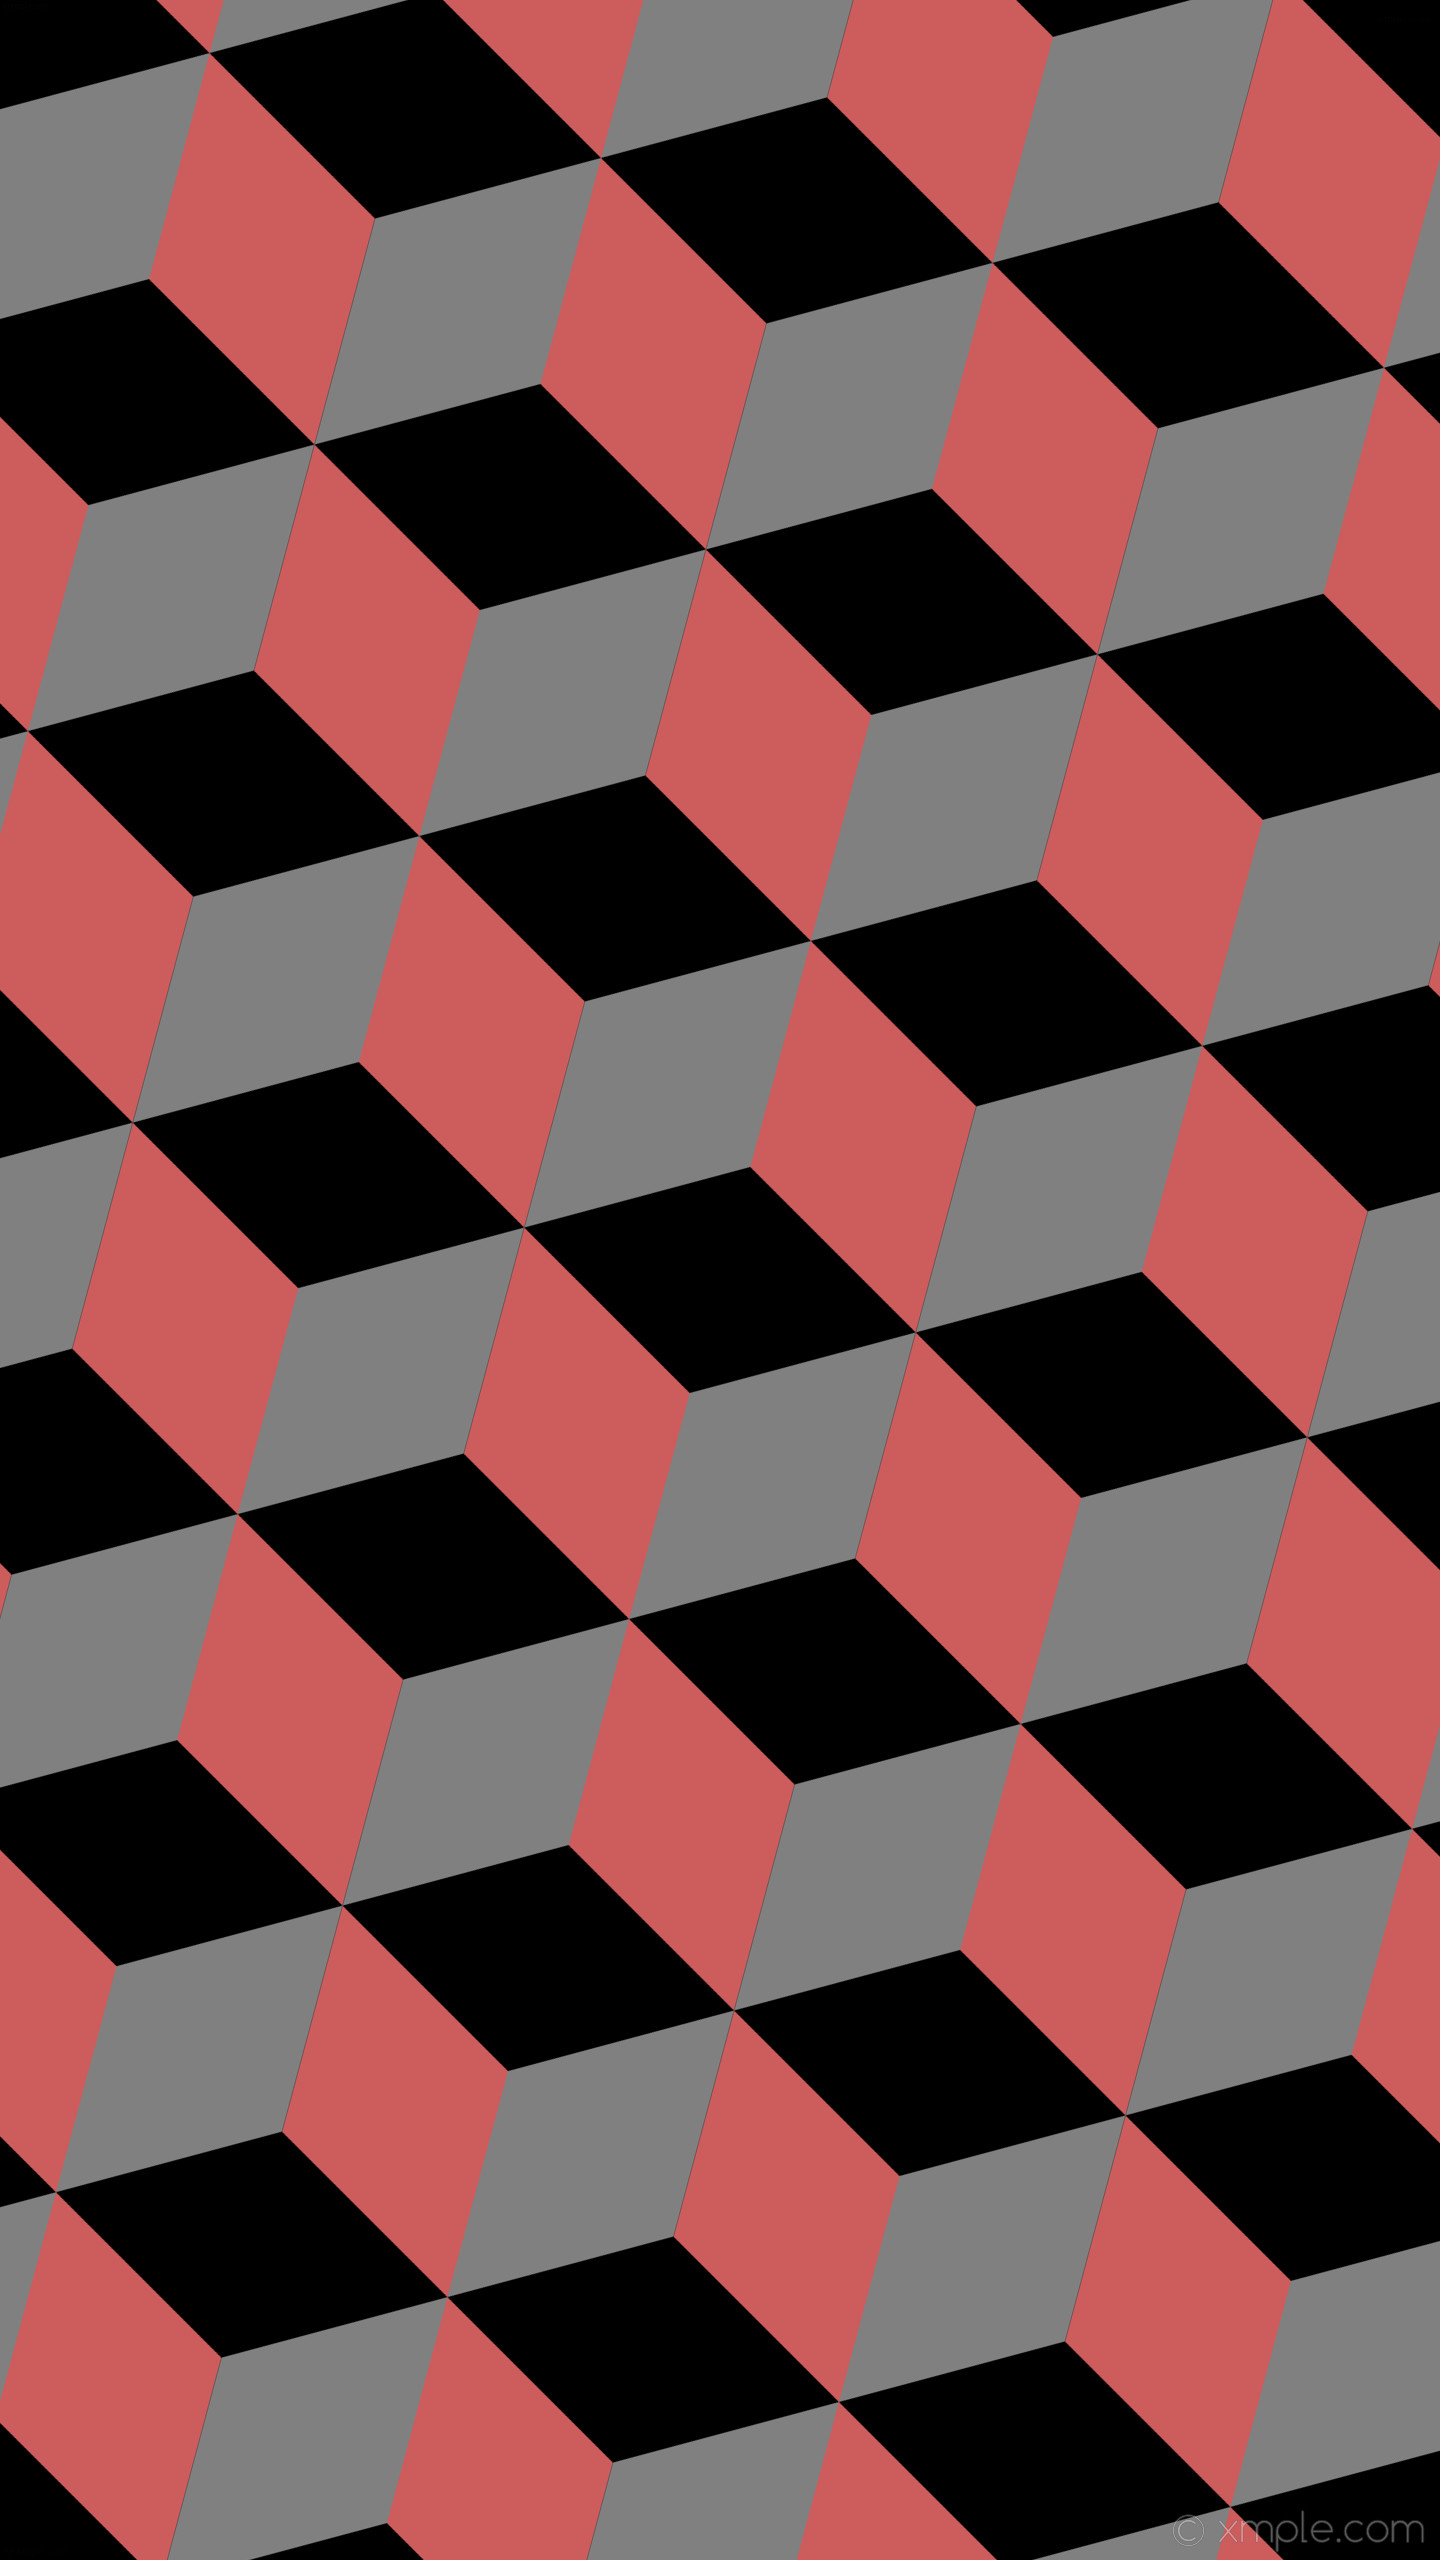 wallpaper grey red 3d cubes black indian red gray #000000 #cd5c5c #808080  165